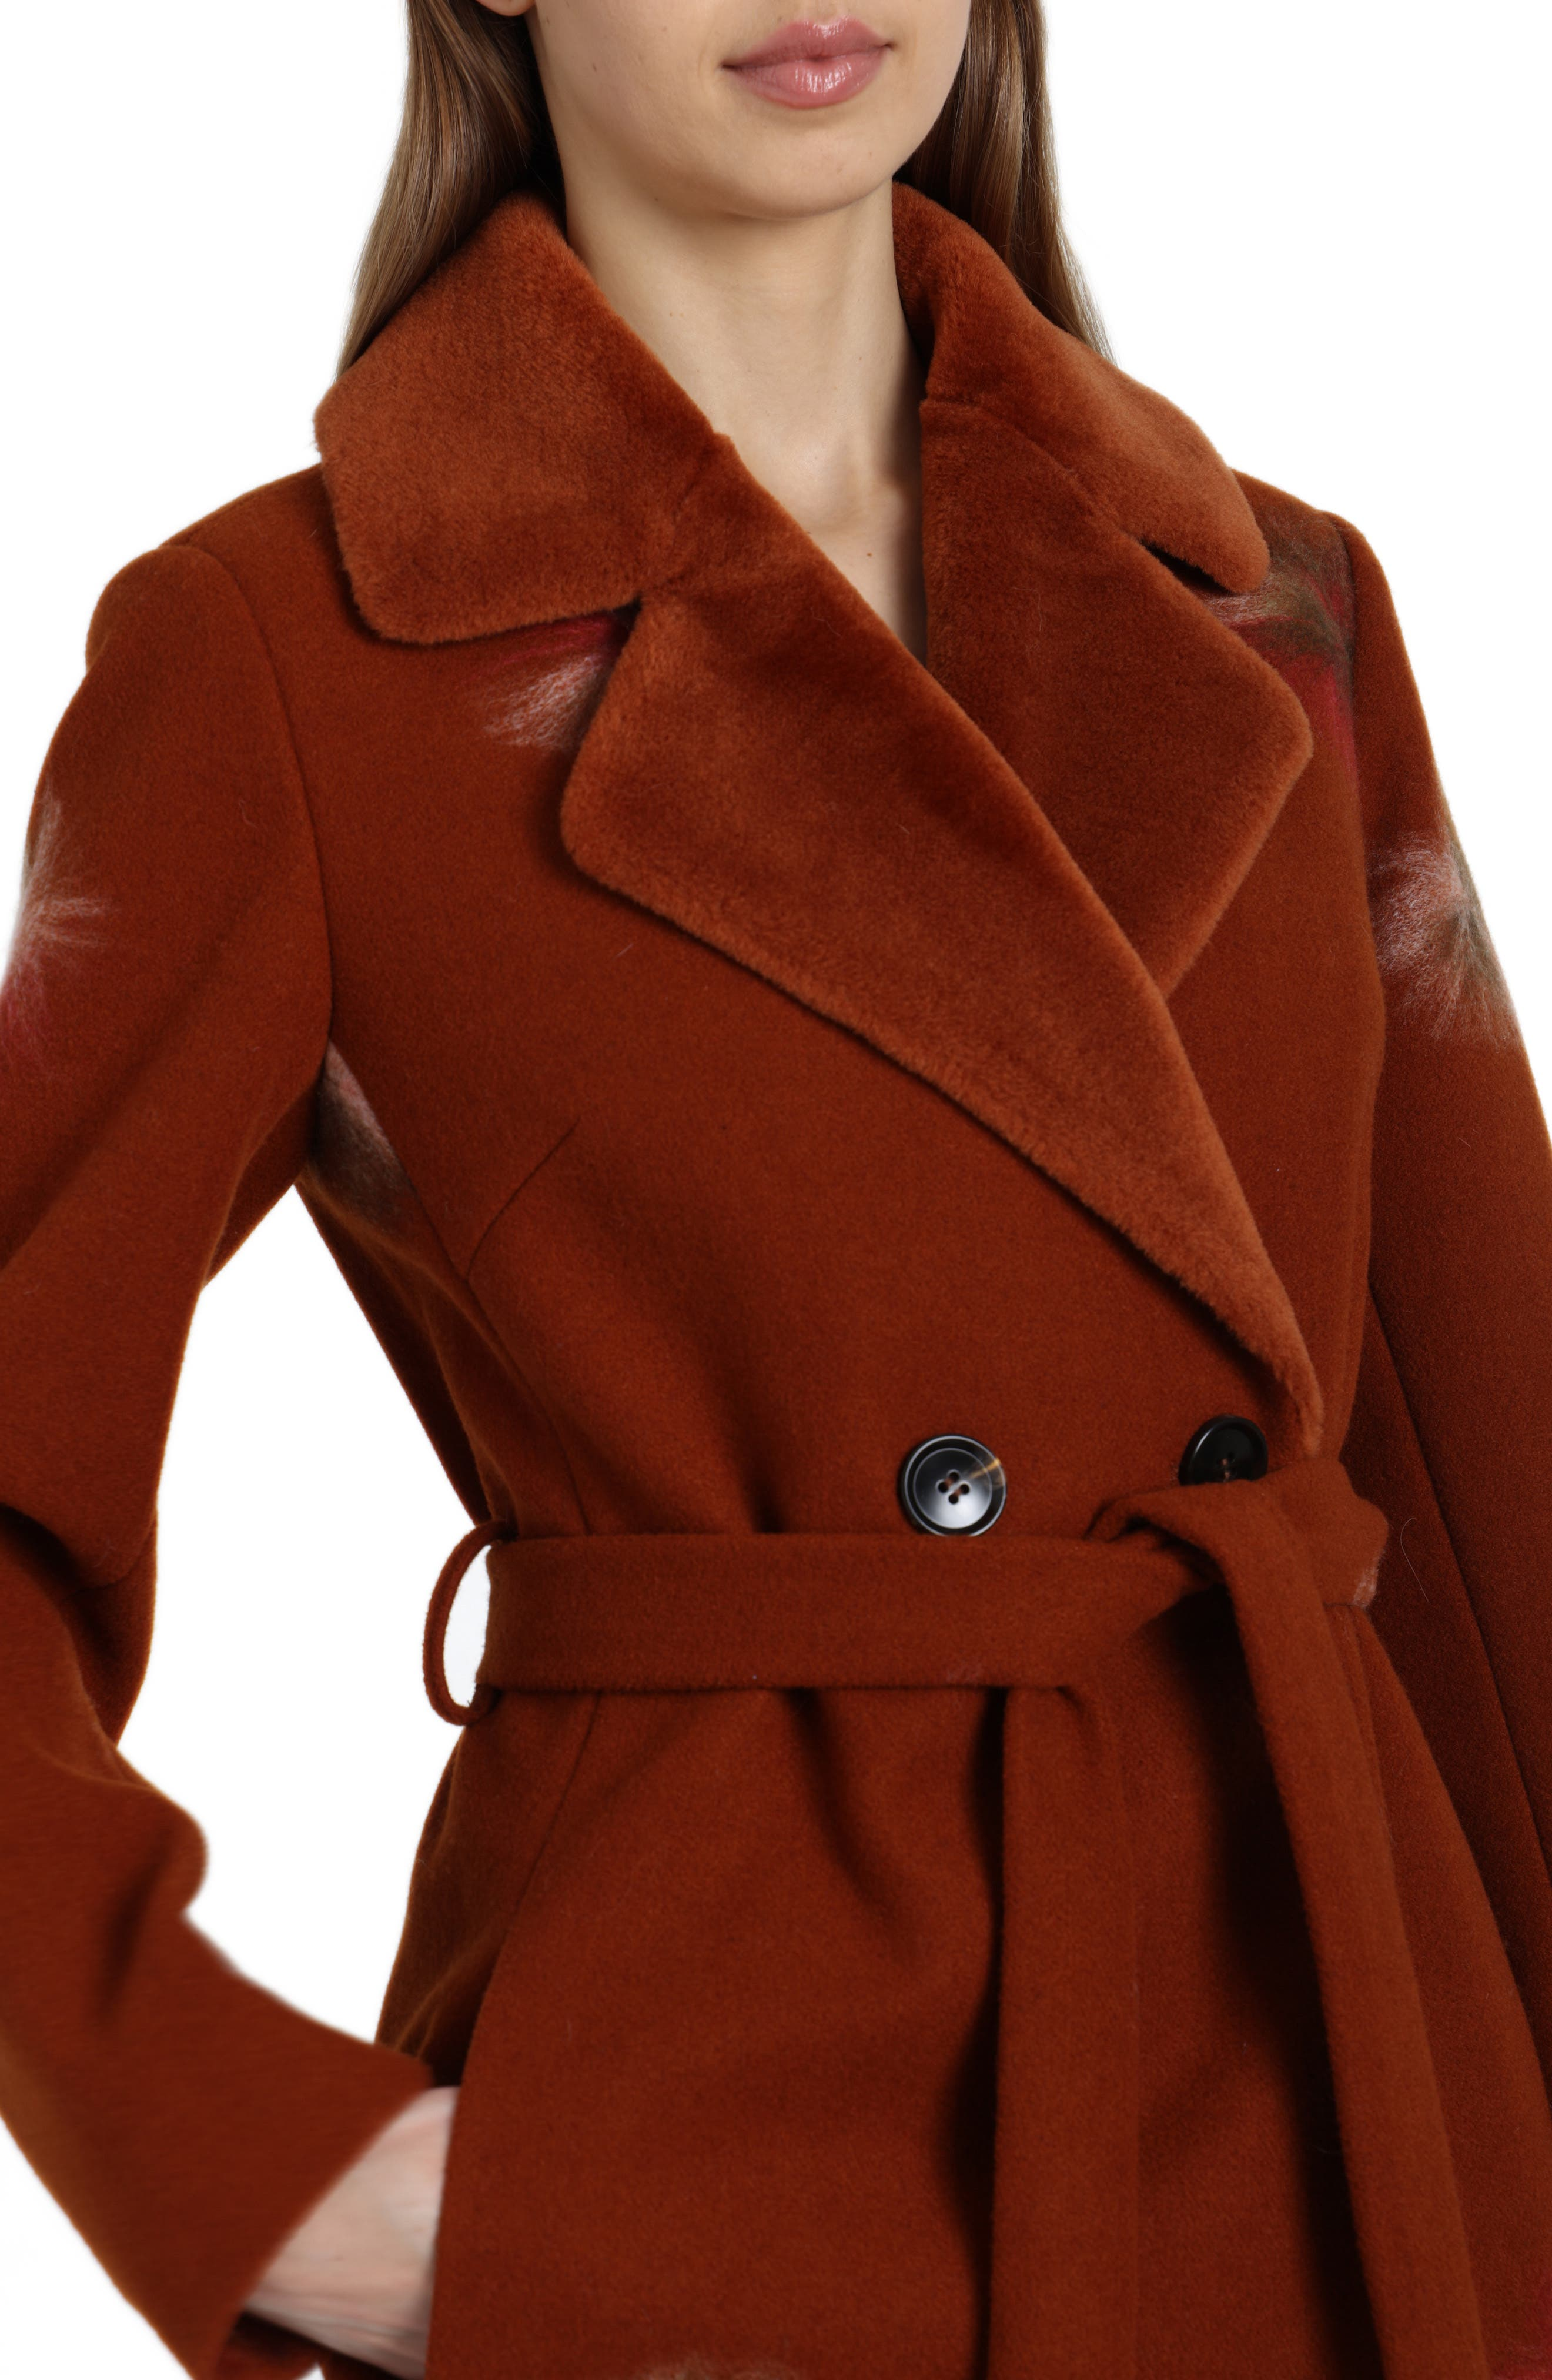 BADGLEY MISCHKA COLLECTION,                             Badgley Mischka Felted Embroidery Wool Blend Coat,                             Alternate thumbnail 4, color,                             801